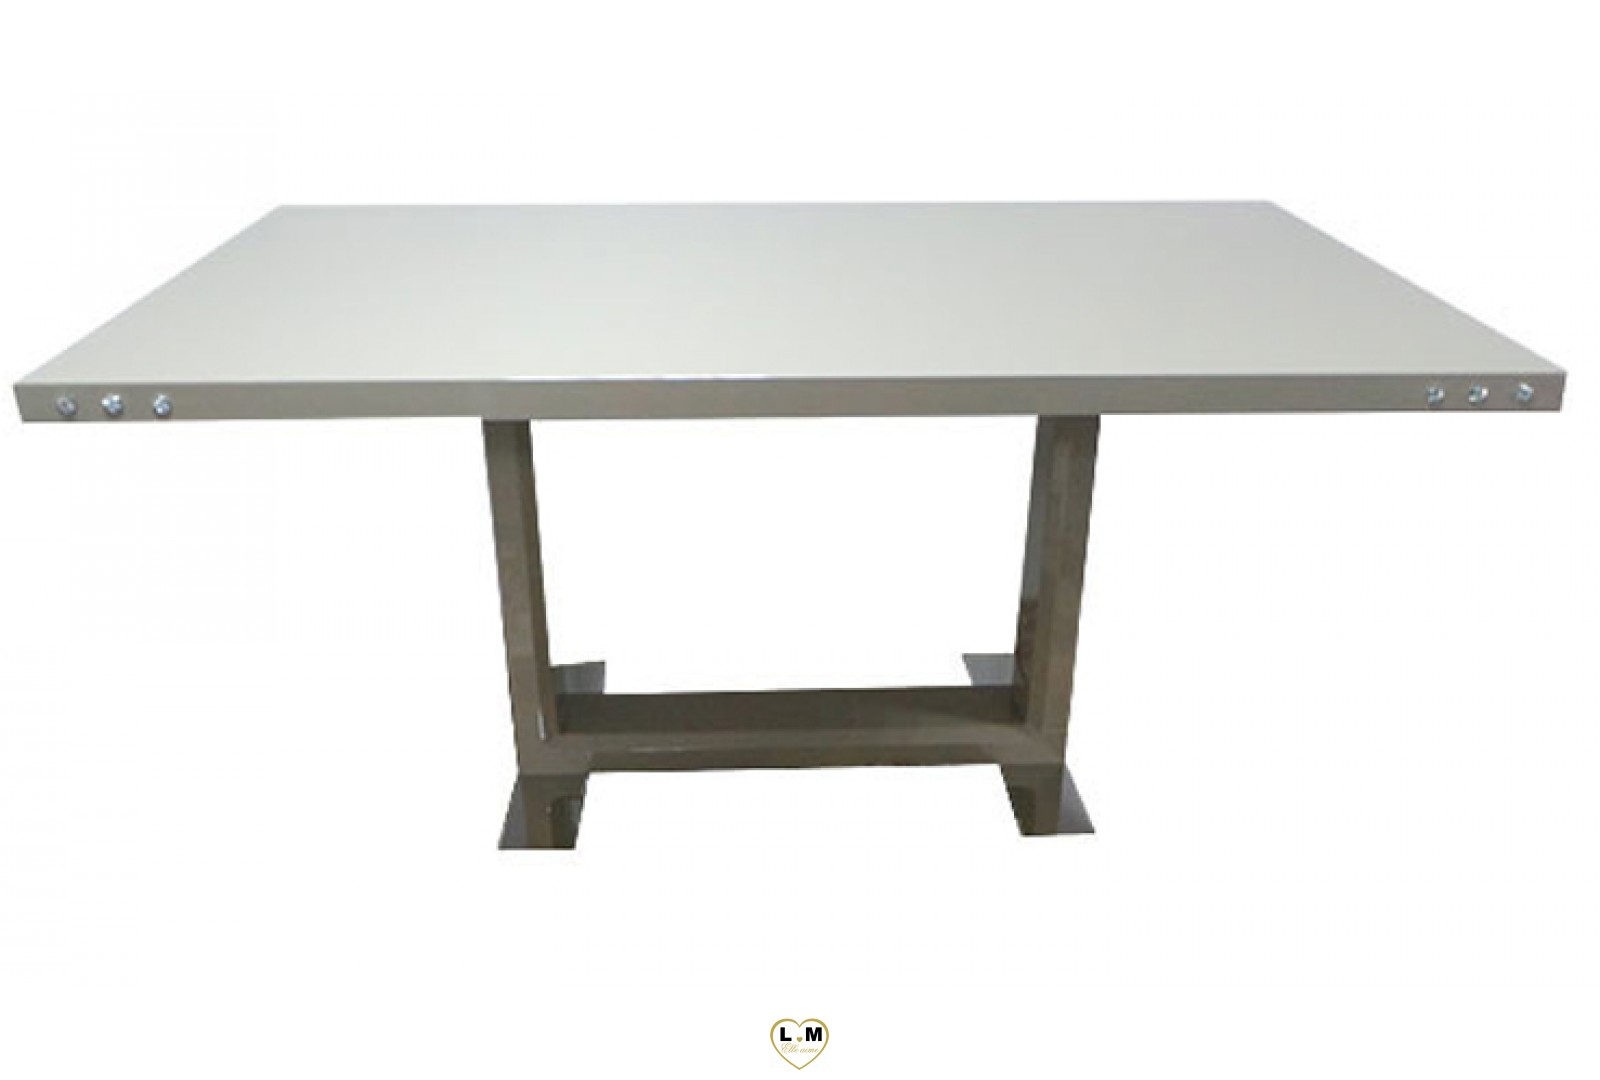 T12t table salle a manger laque taupe lignemeuble com - Table a manger taupe ...